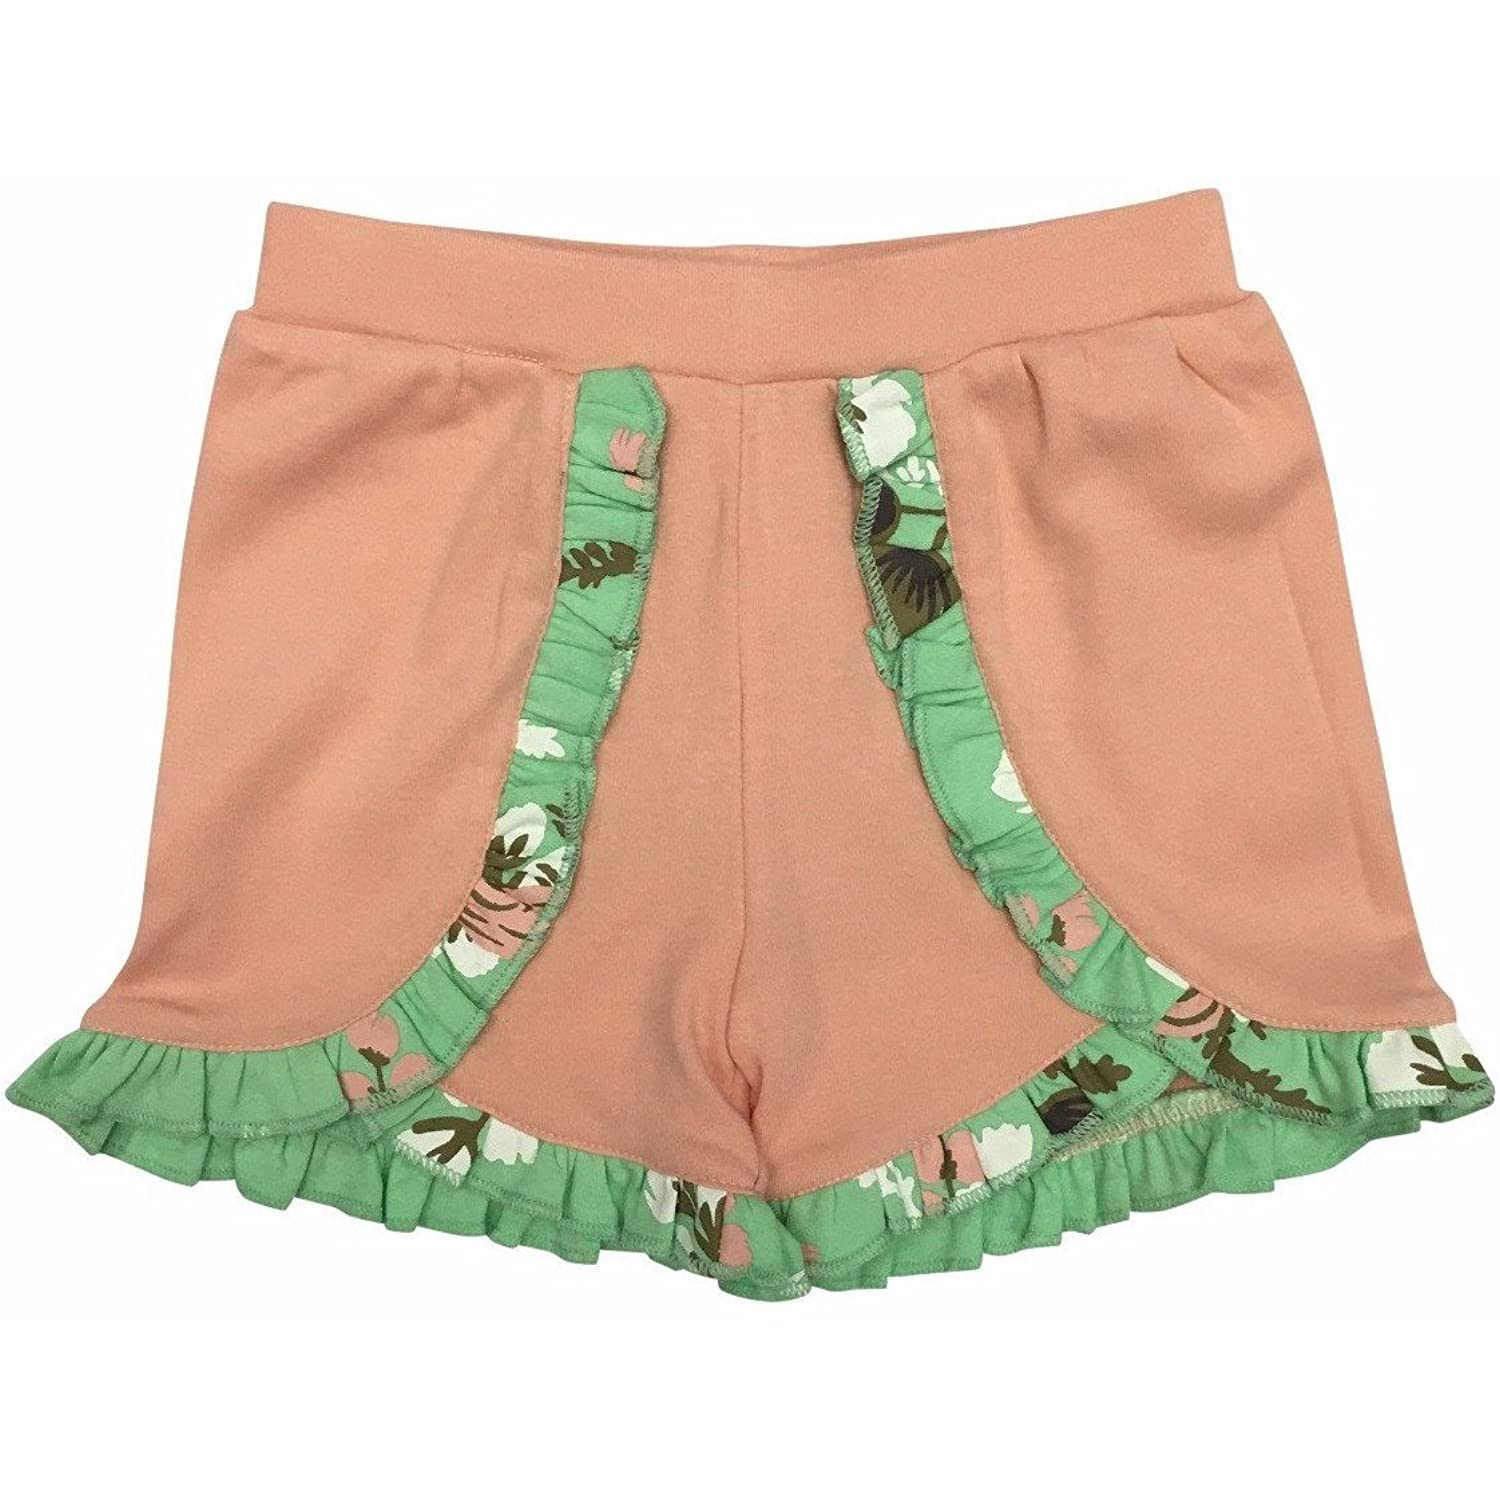 Adorable Essentials Sorbet Sass Shorts